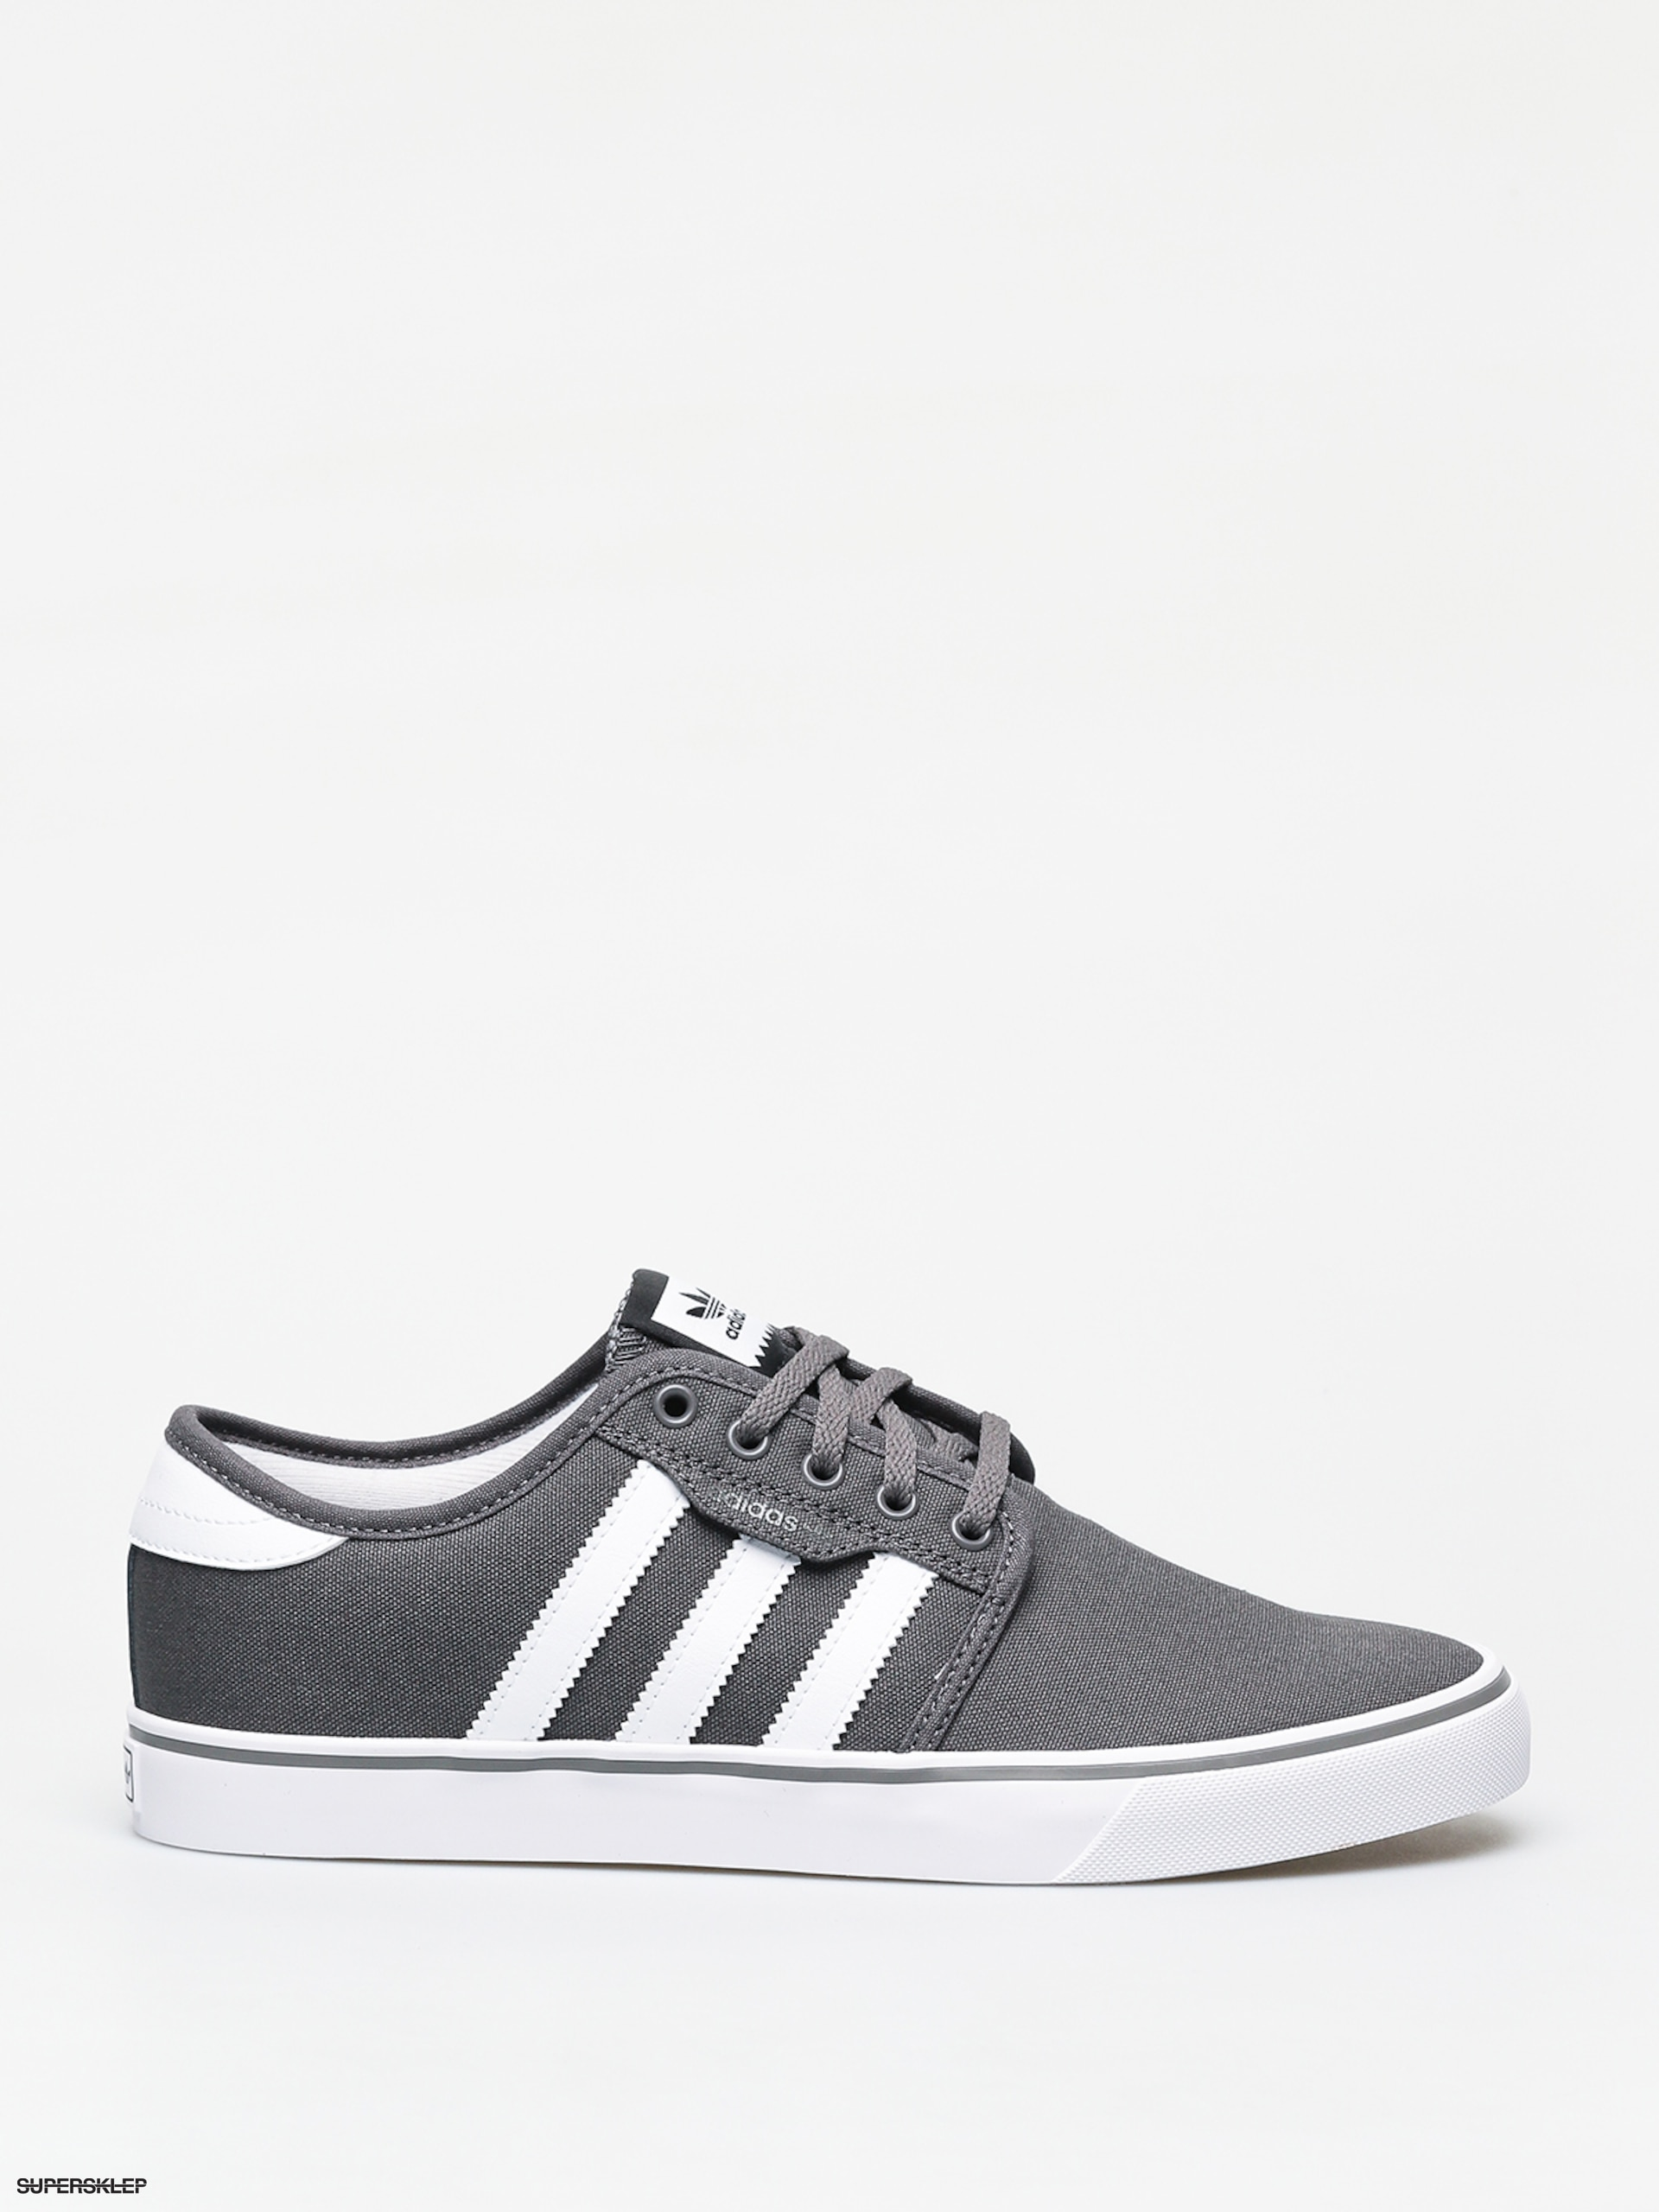 clearance sale 50% price best selling Buty adidas Seeley (ash/ftwwht/cblack)